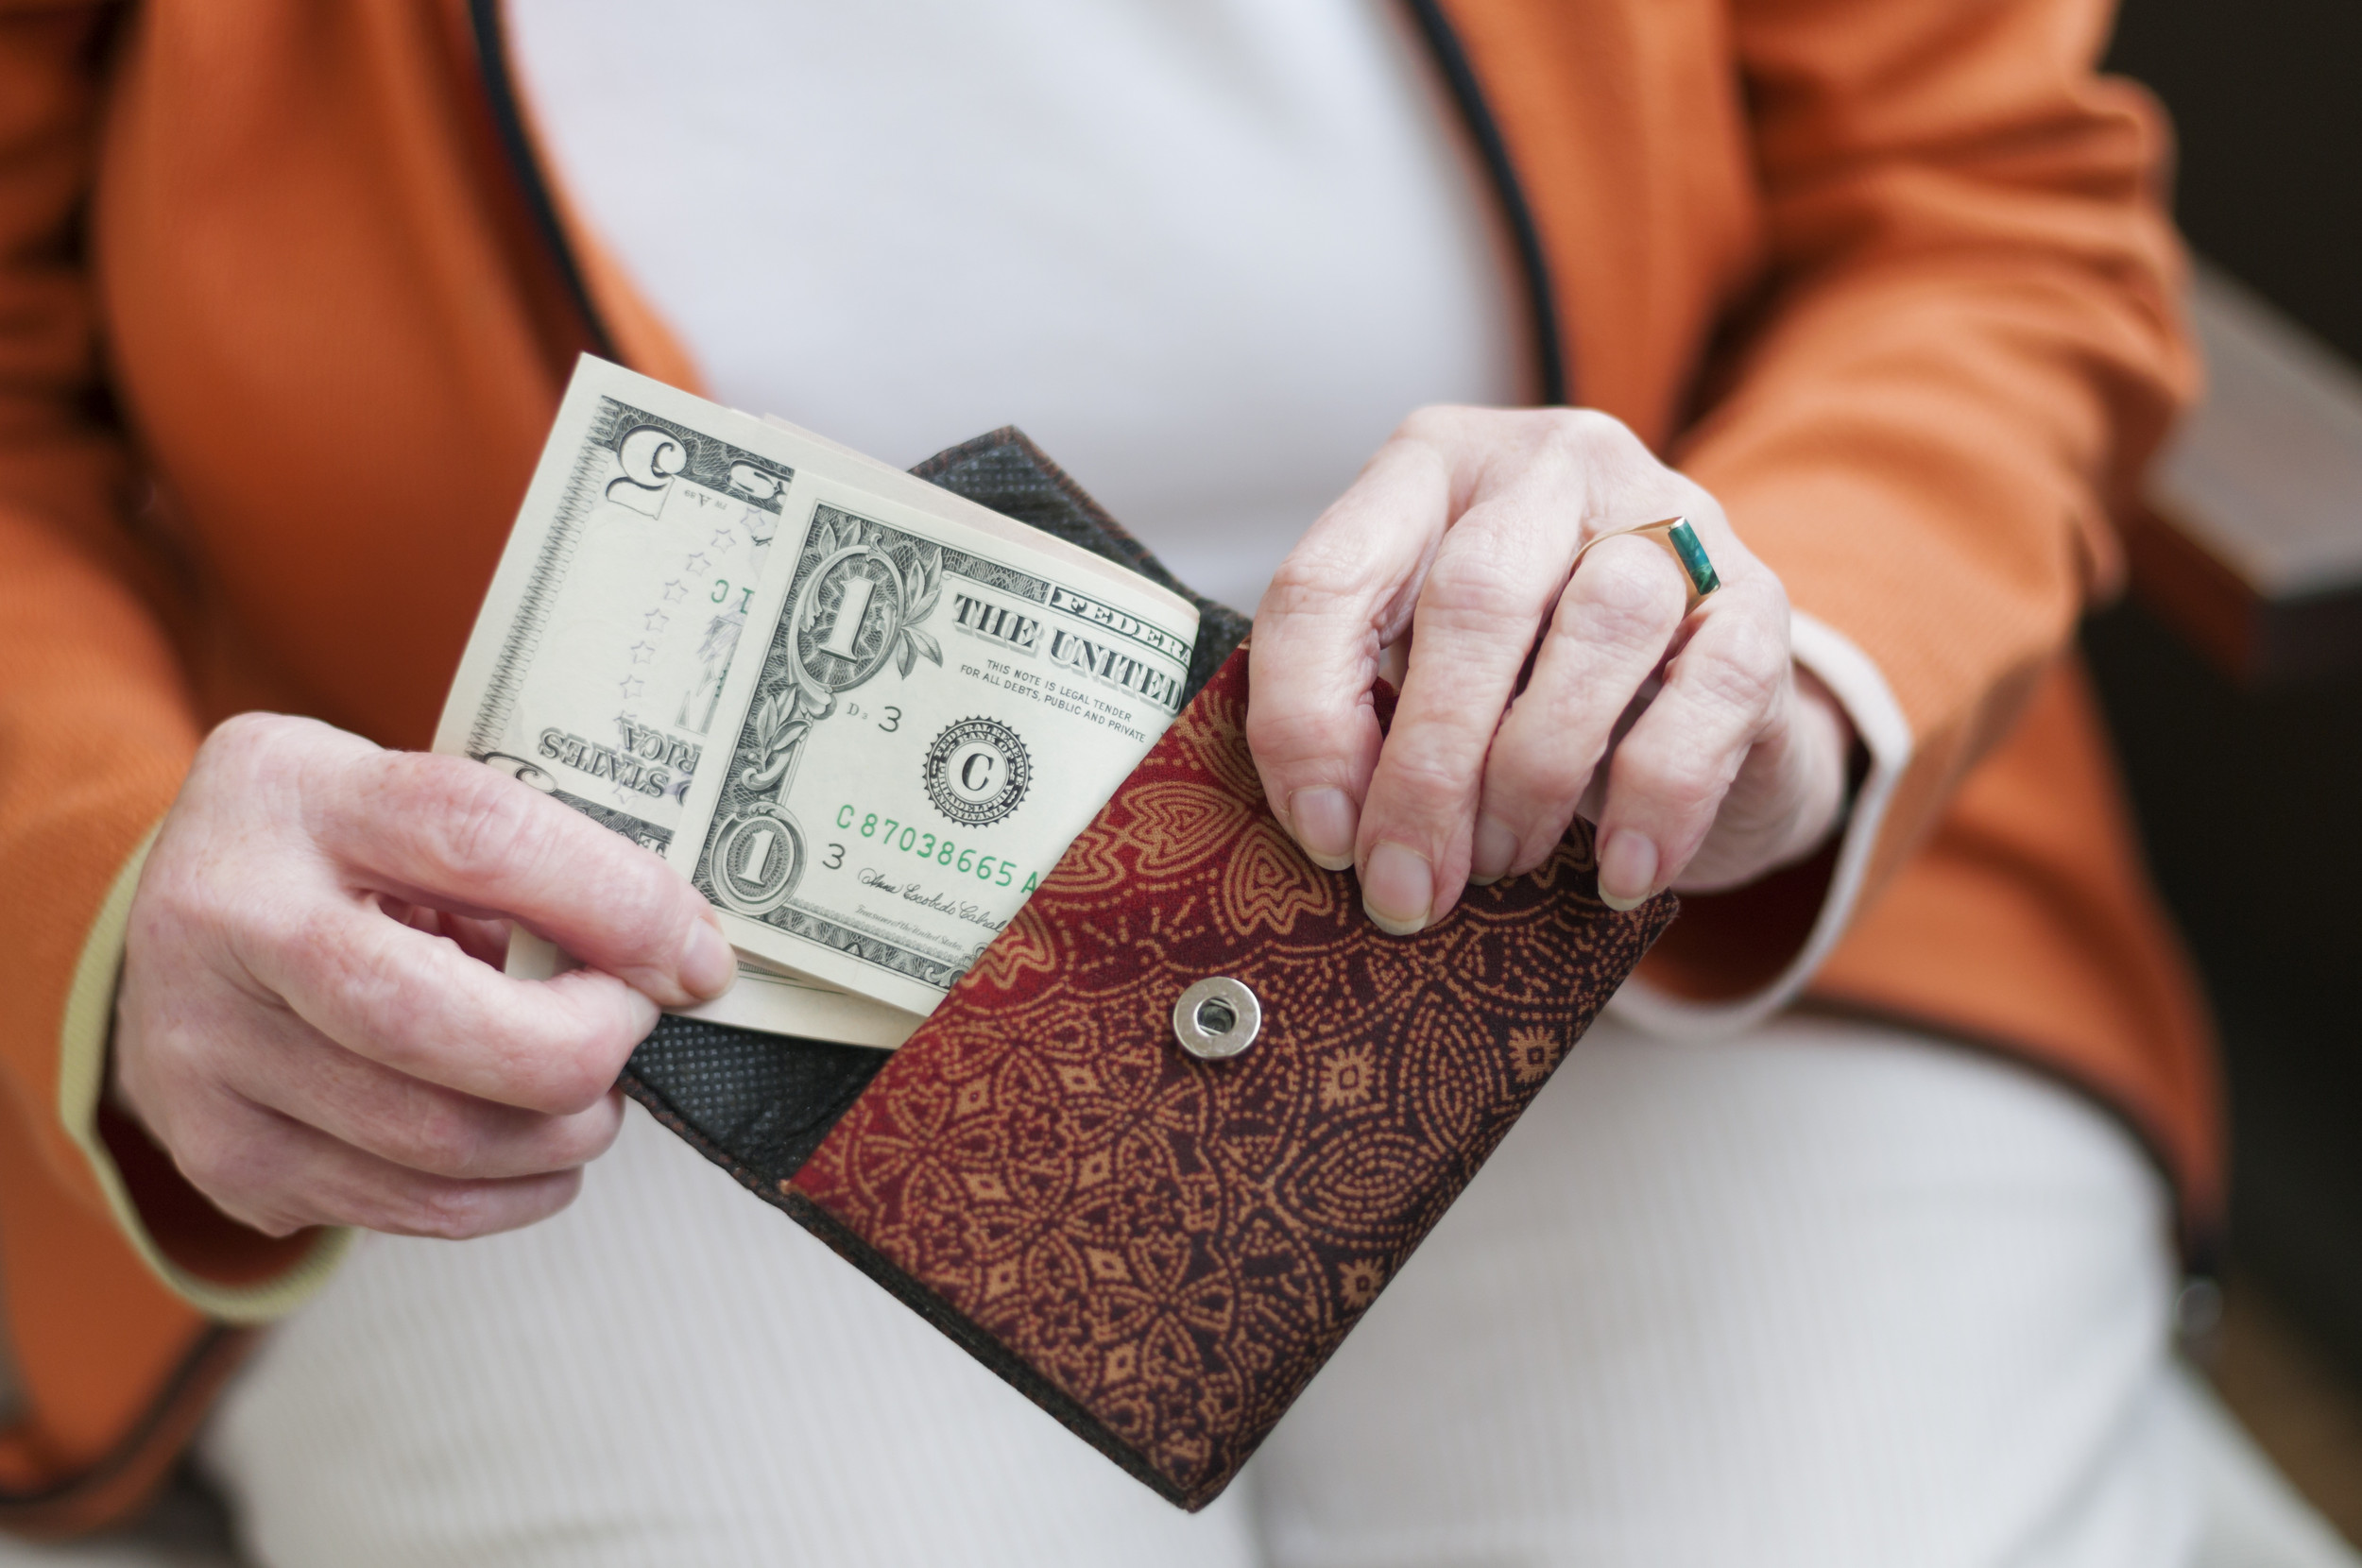 To retire safely, make smart spending a priority along with saving